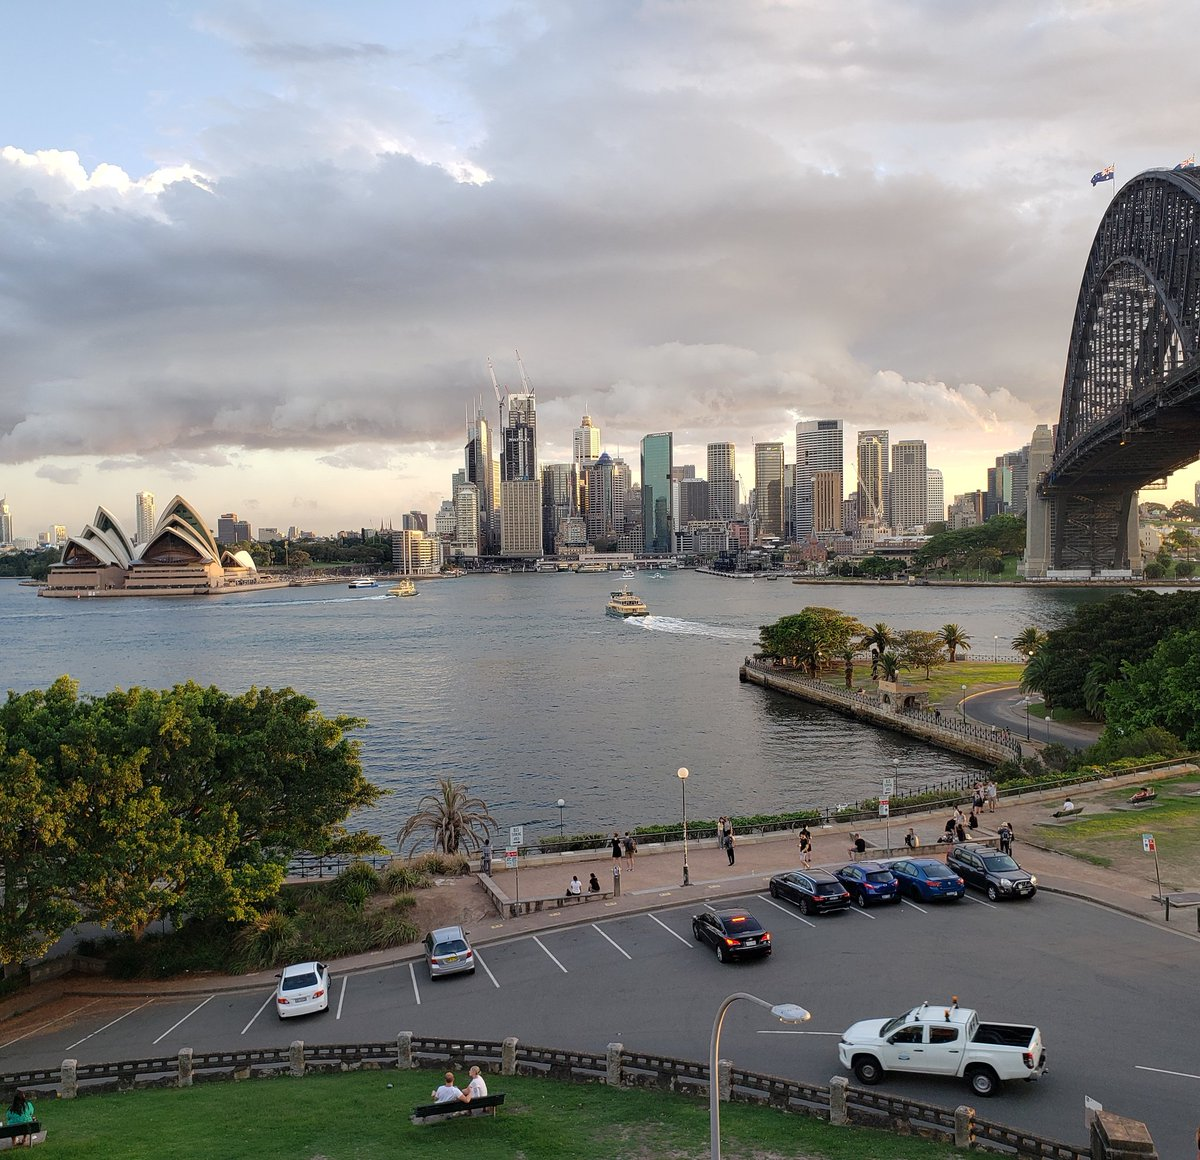 This is the view from my place #vacation #sydney #australia #travel #beautiful #sydneyoperahouse #sydneyharbour #sydneyharbourbridge #nofilter